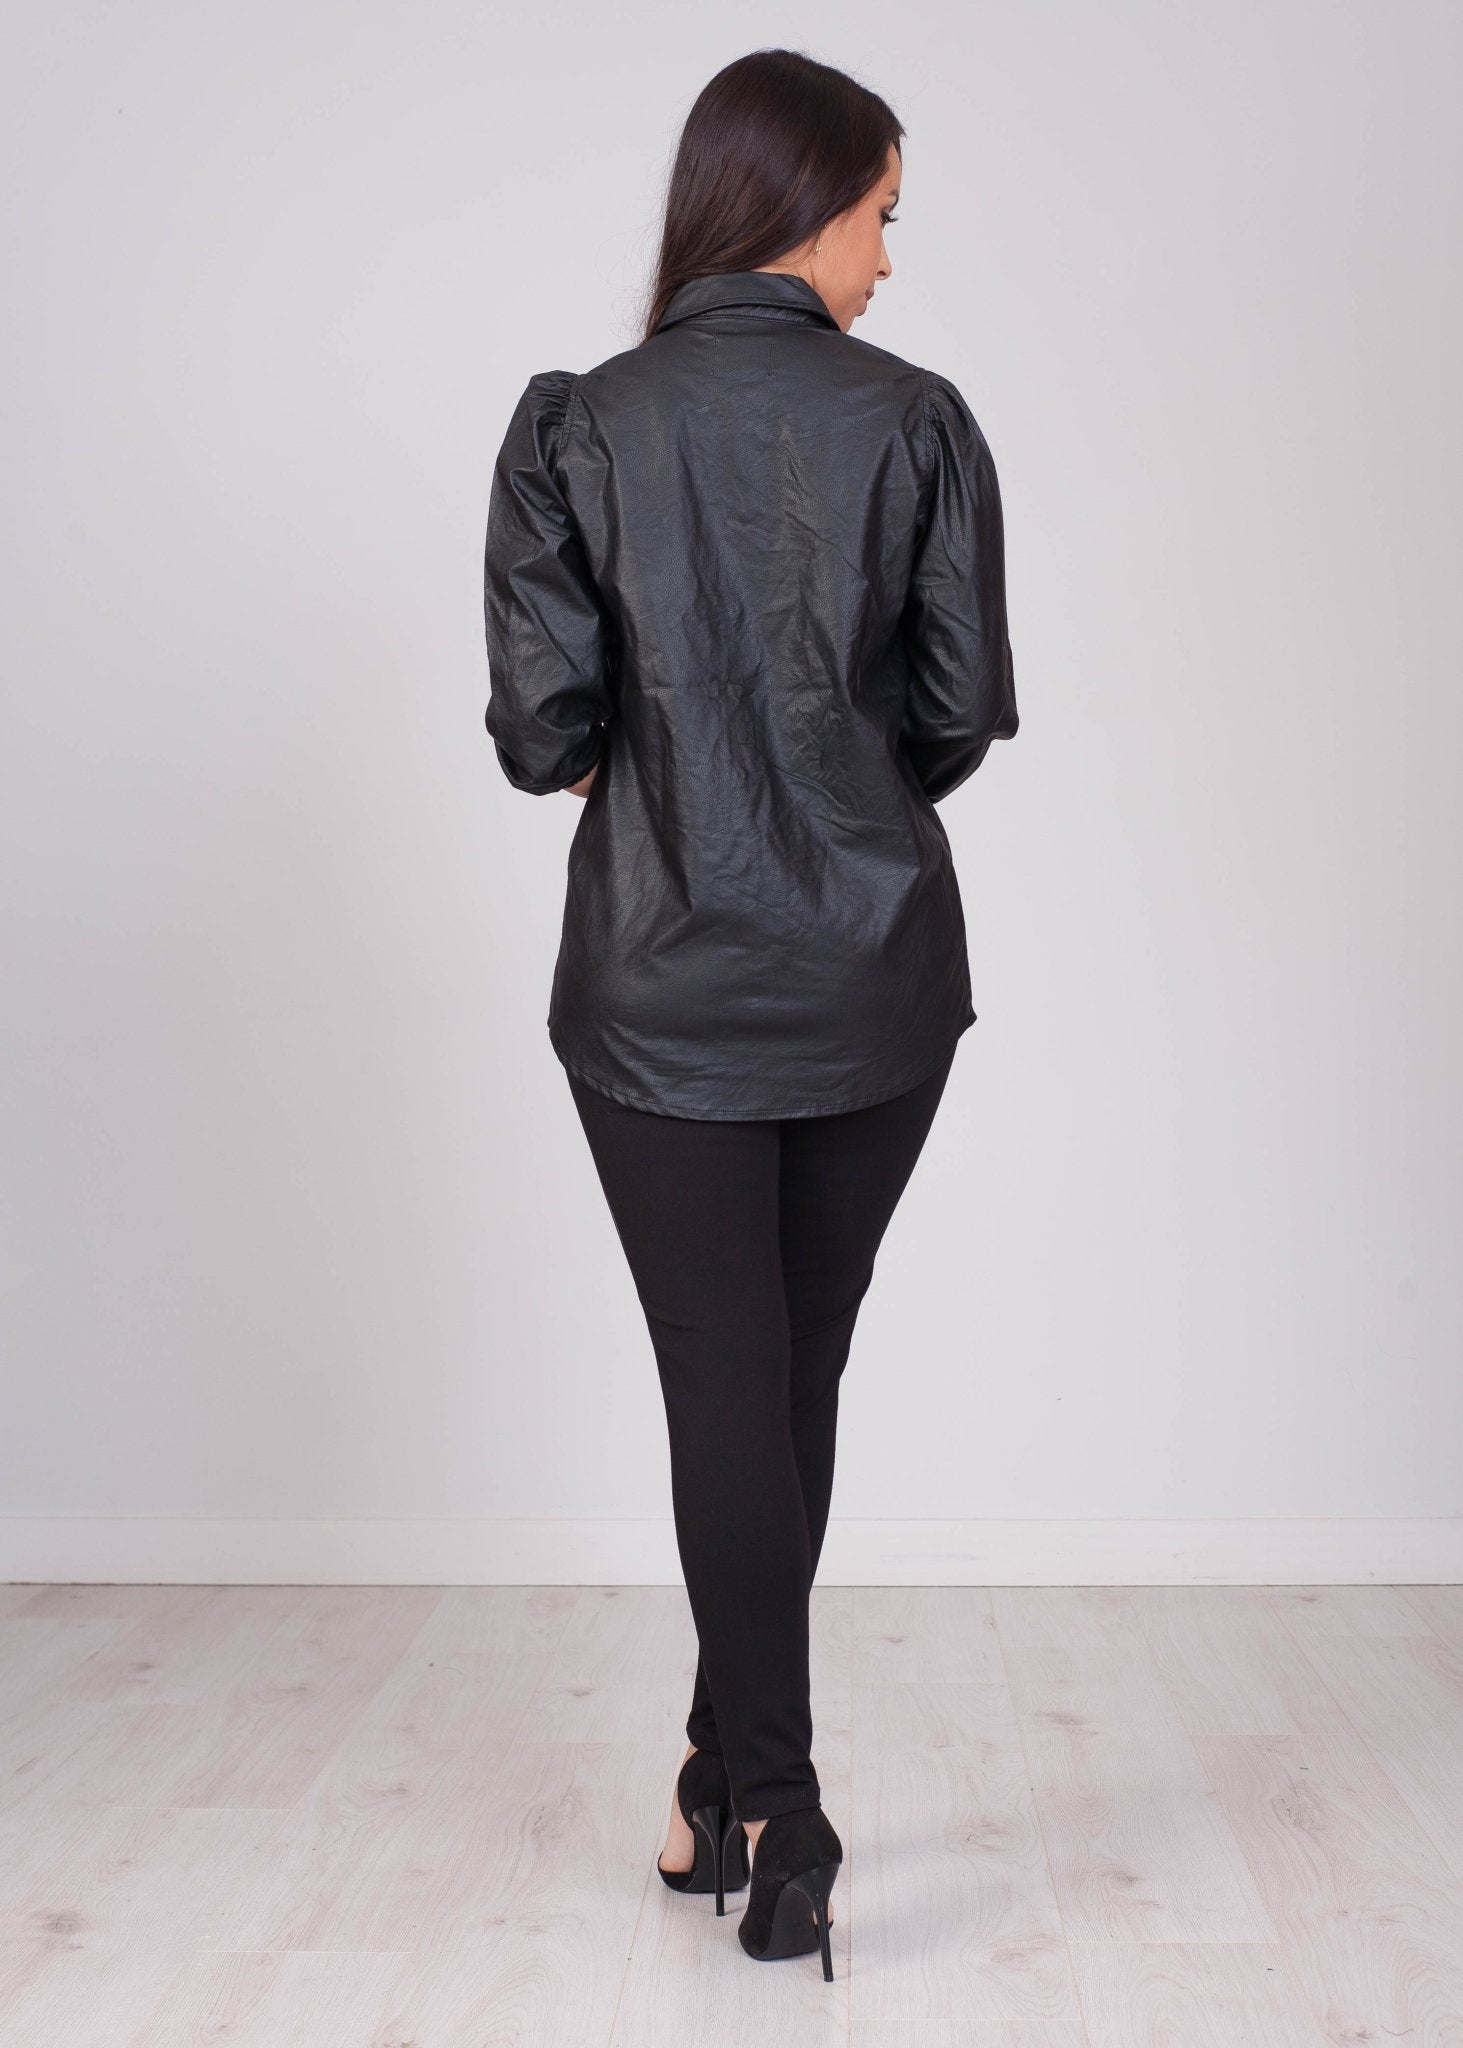 Sissy Leather Look Shirt In Black - The Walk in Wardrobe